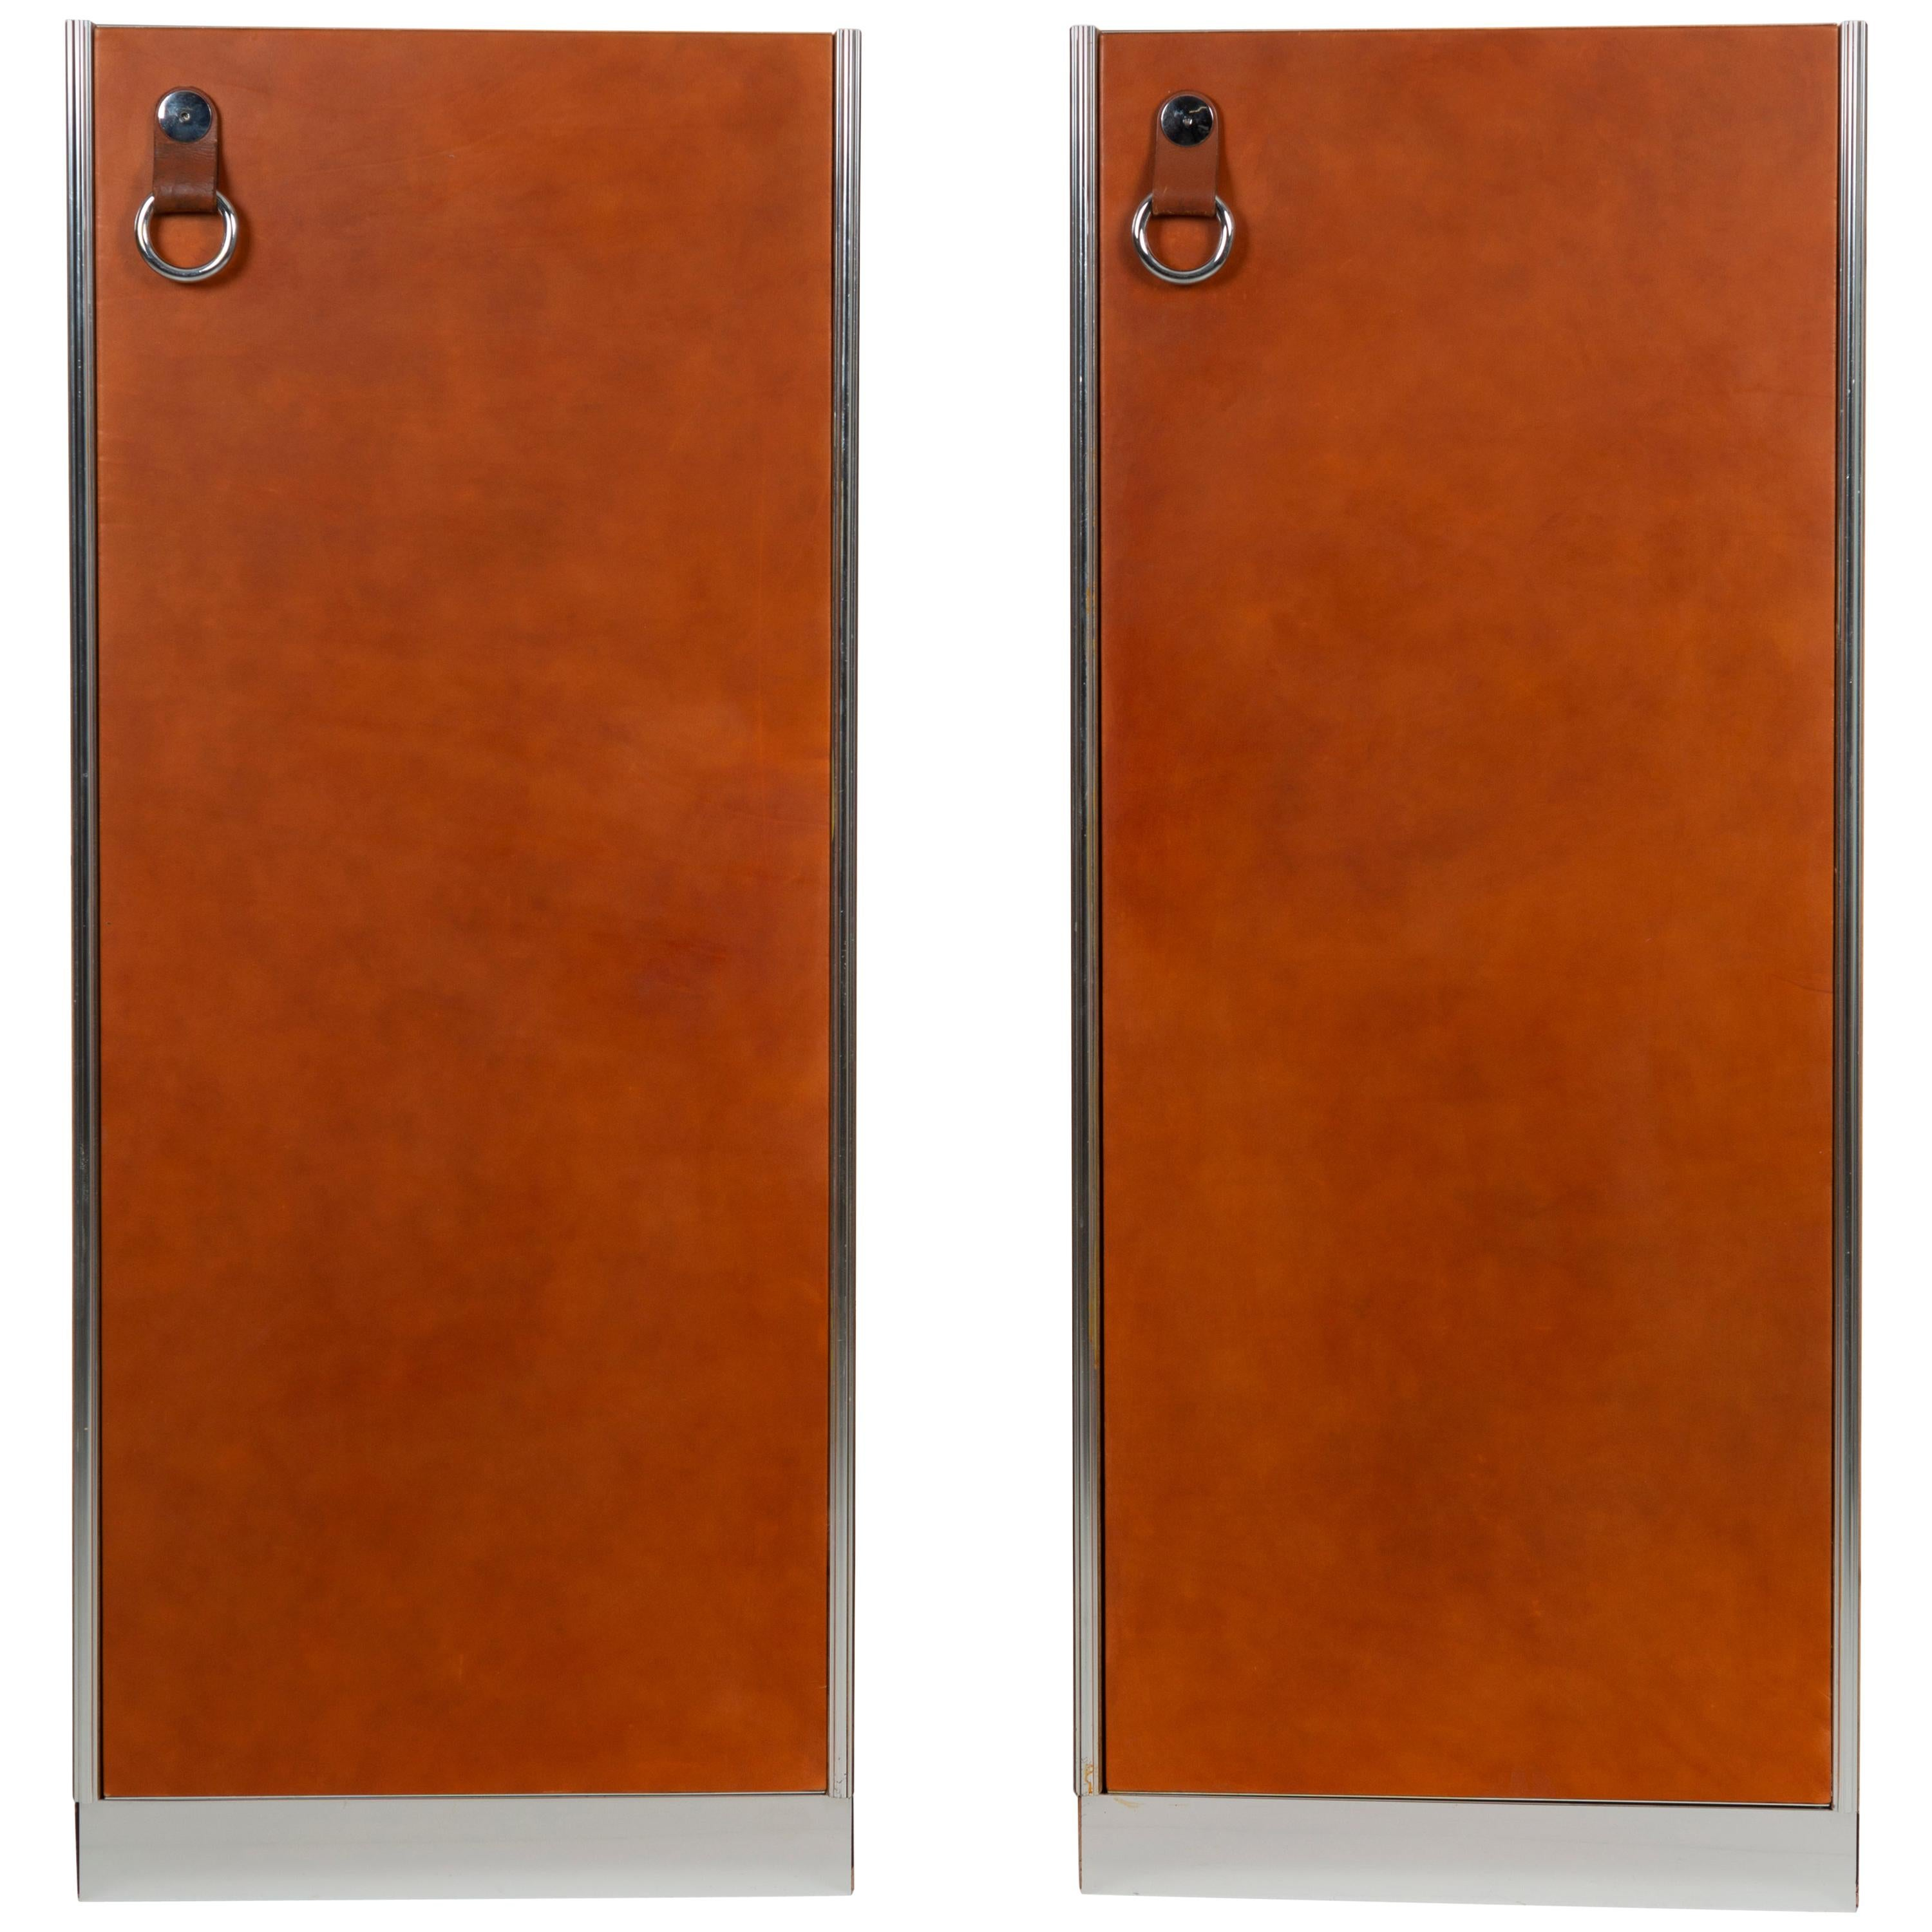 Guido Faleschini for Mariani Pace Collection, Pair of Cabinets